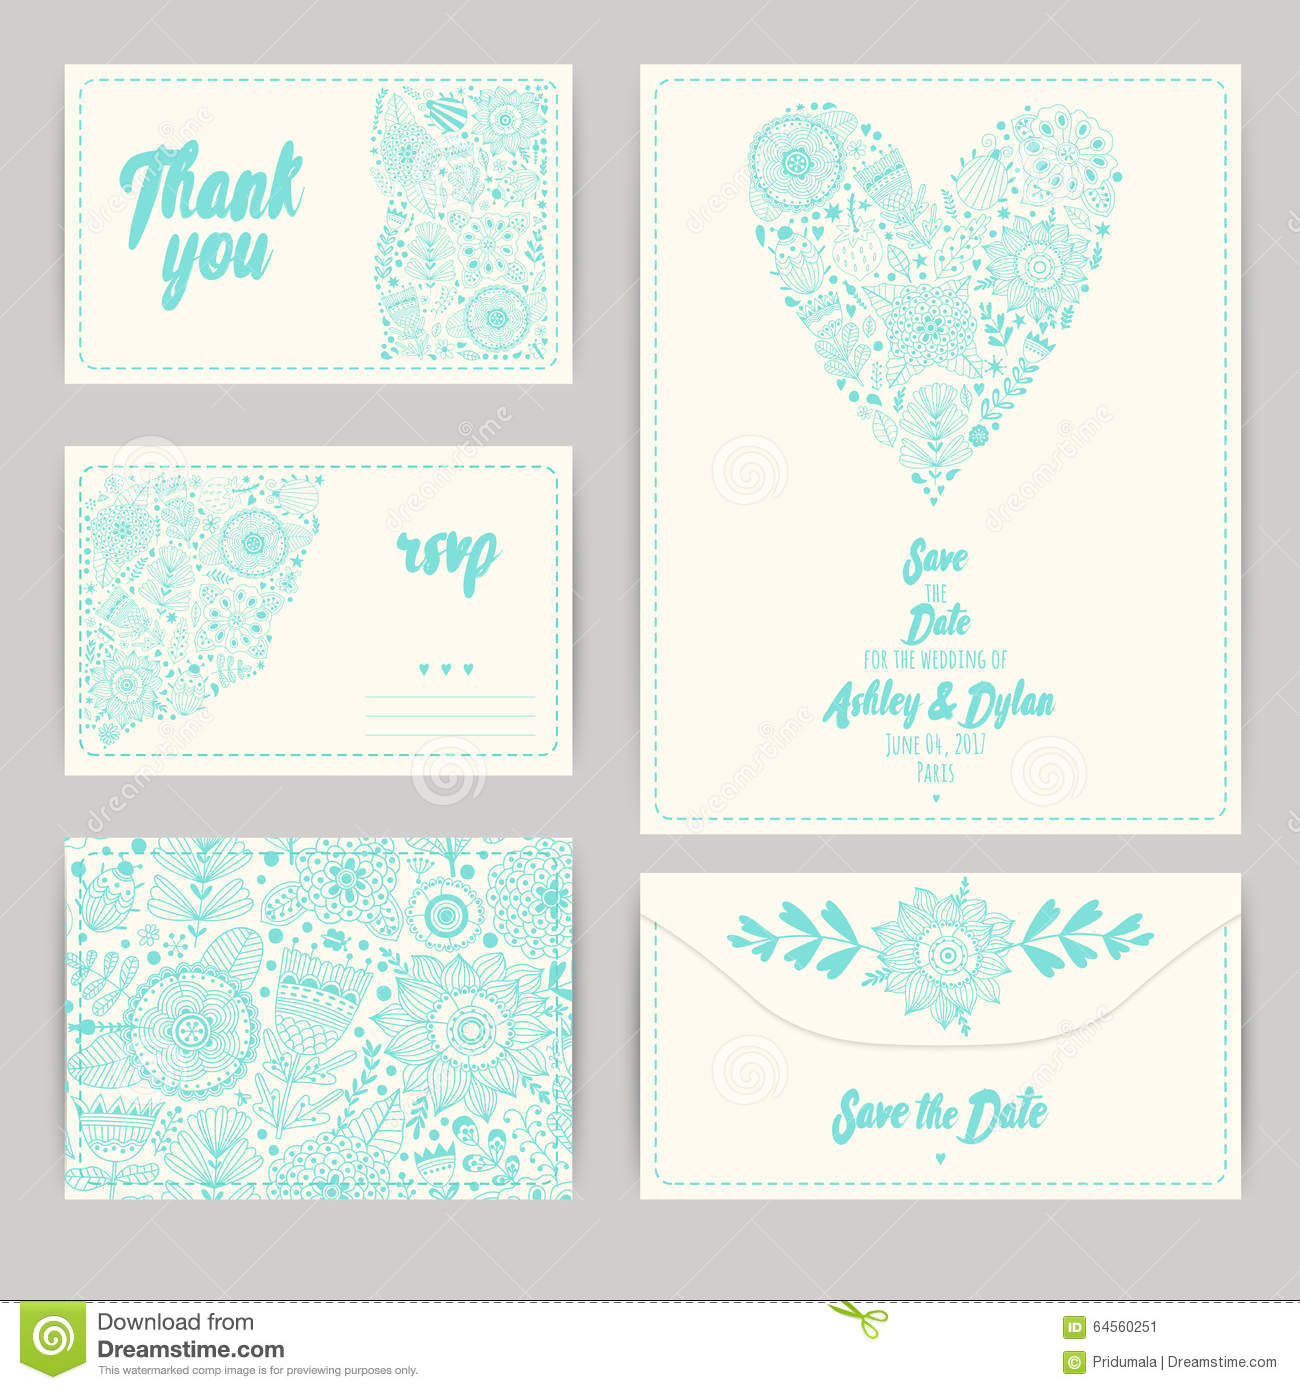 Wedding Invitation Template Invitation Envelope Thank